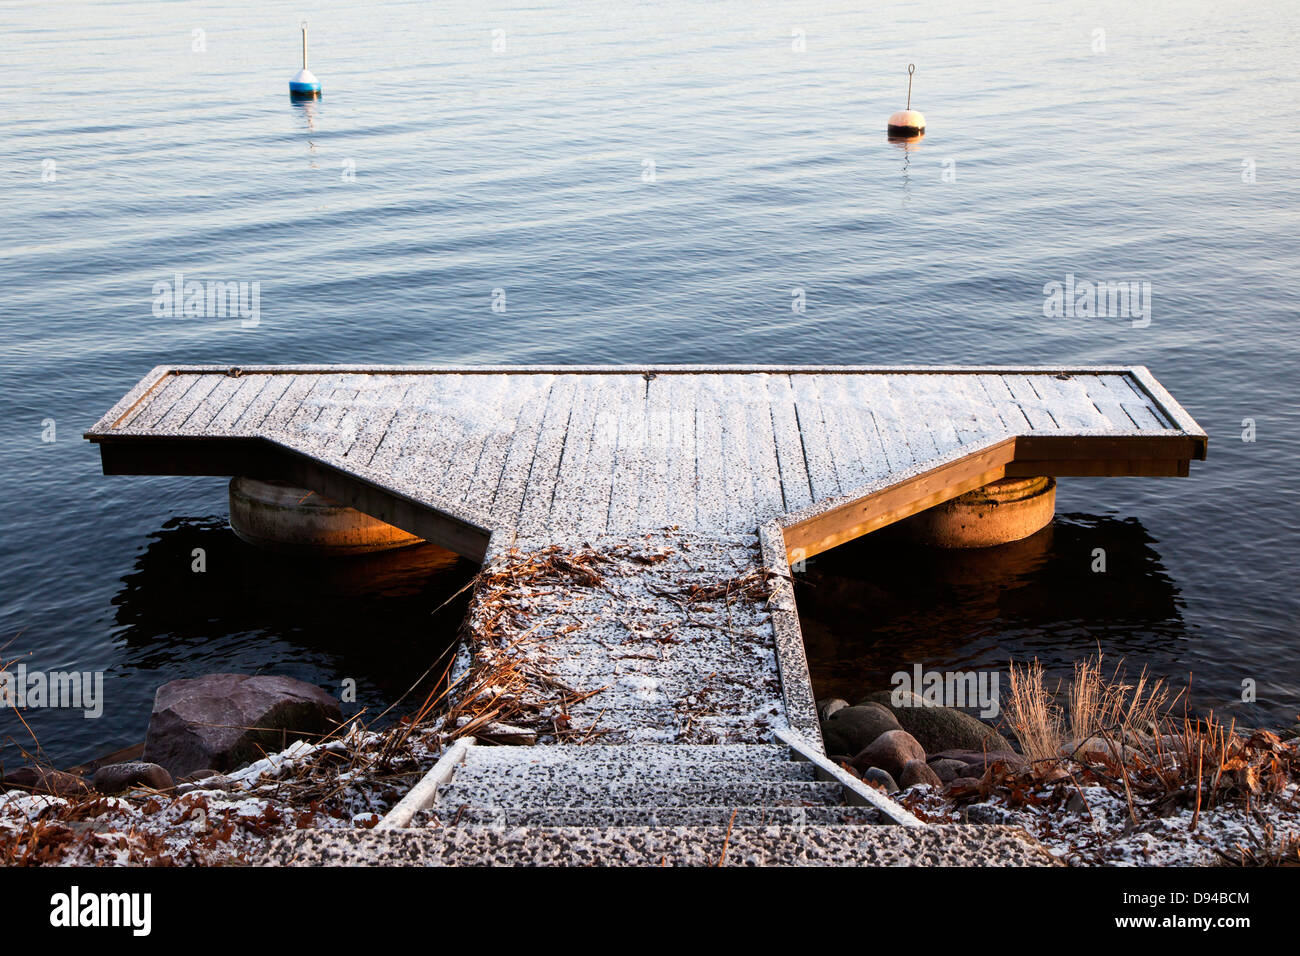 Jetty couverte de neige Photo Stock